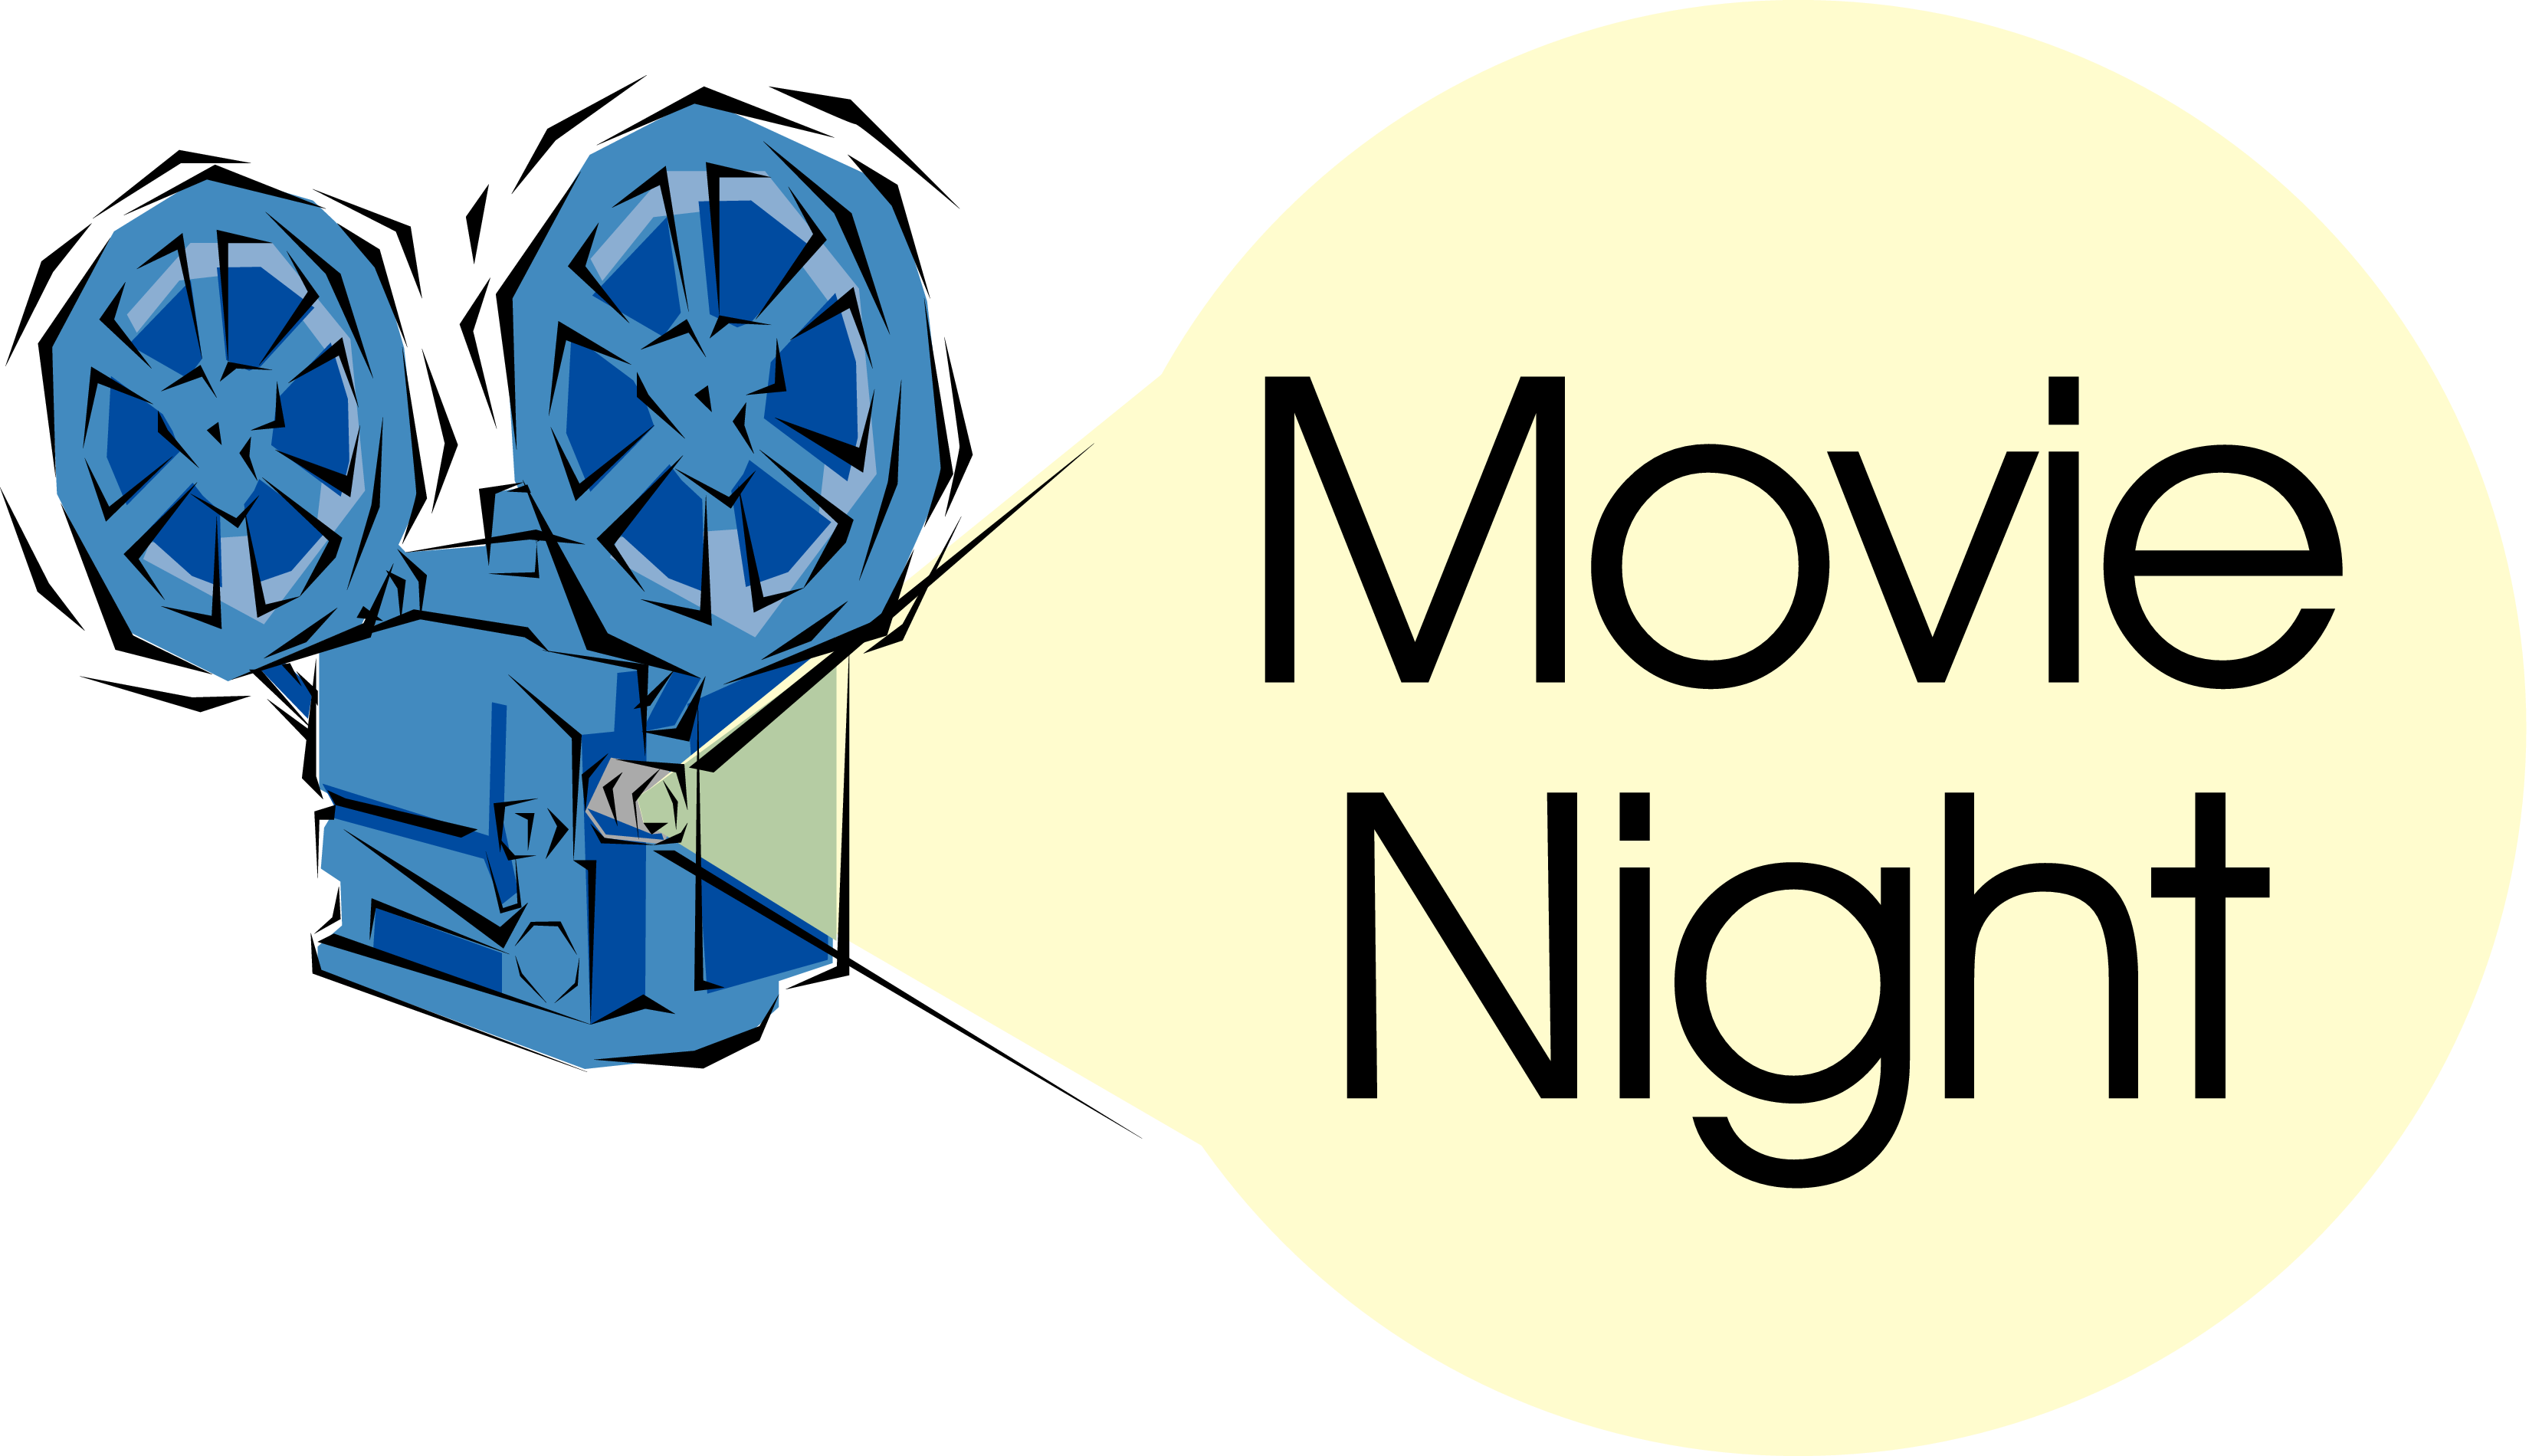 PNG Movie Night - 42239